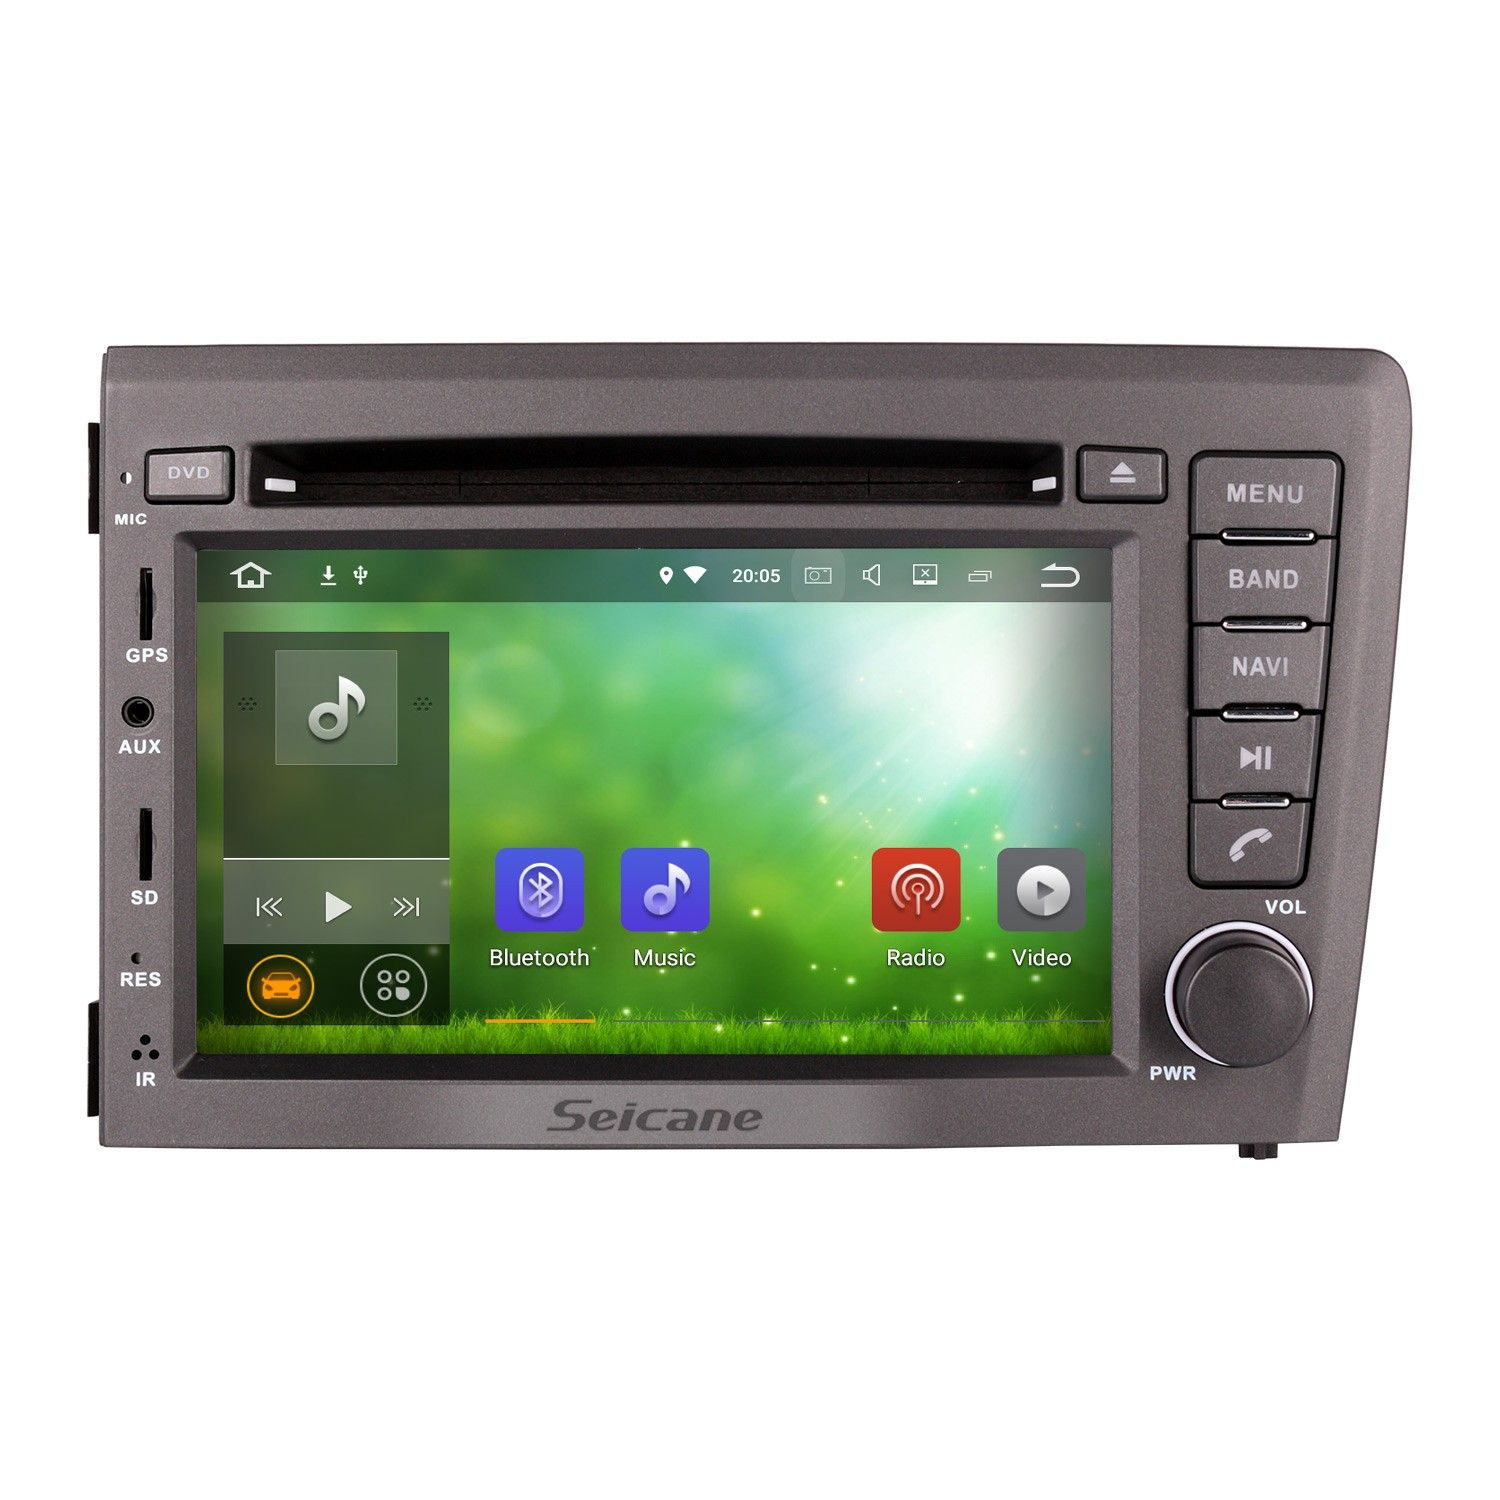 Seicane 2001-2004 VOLVO S60 V70 Android 7.1 HD Touch Screen DVD Player  Radio Bluetooth